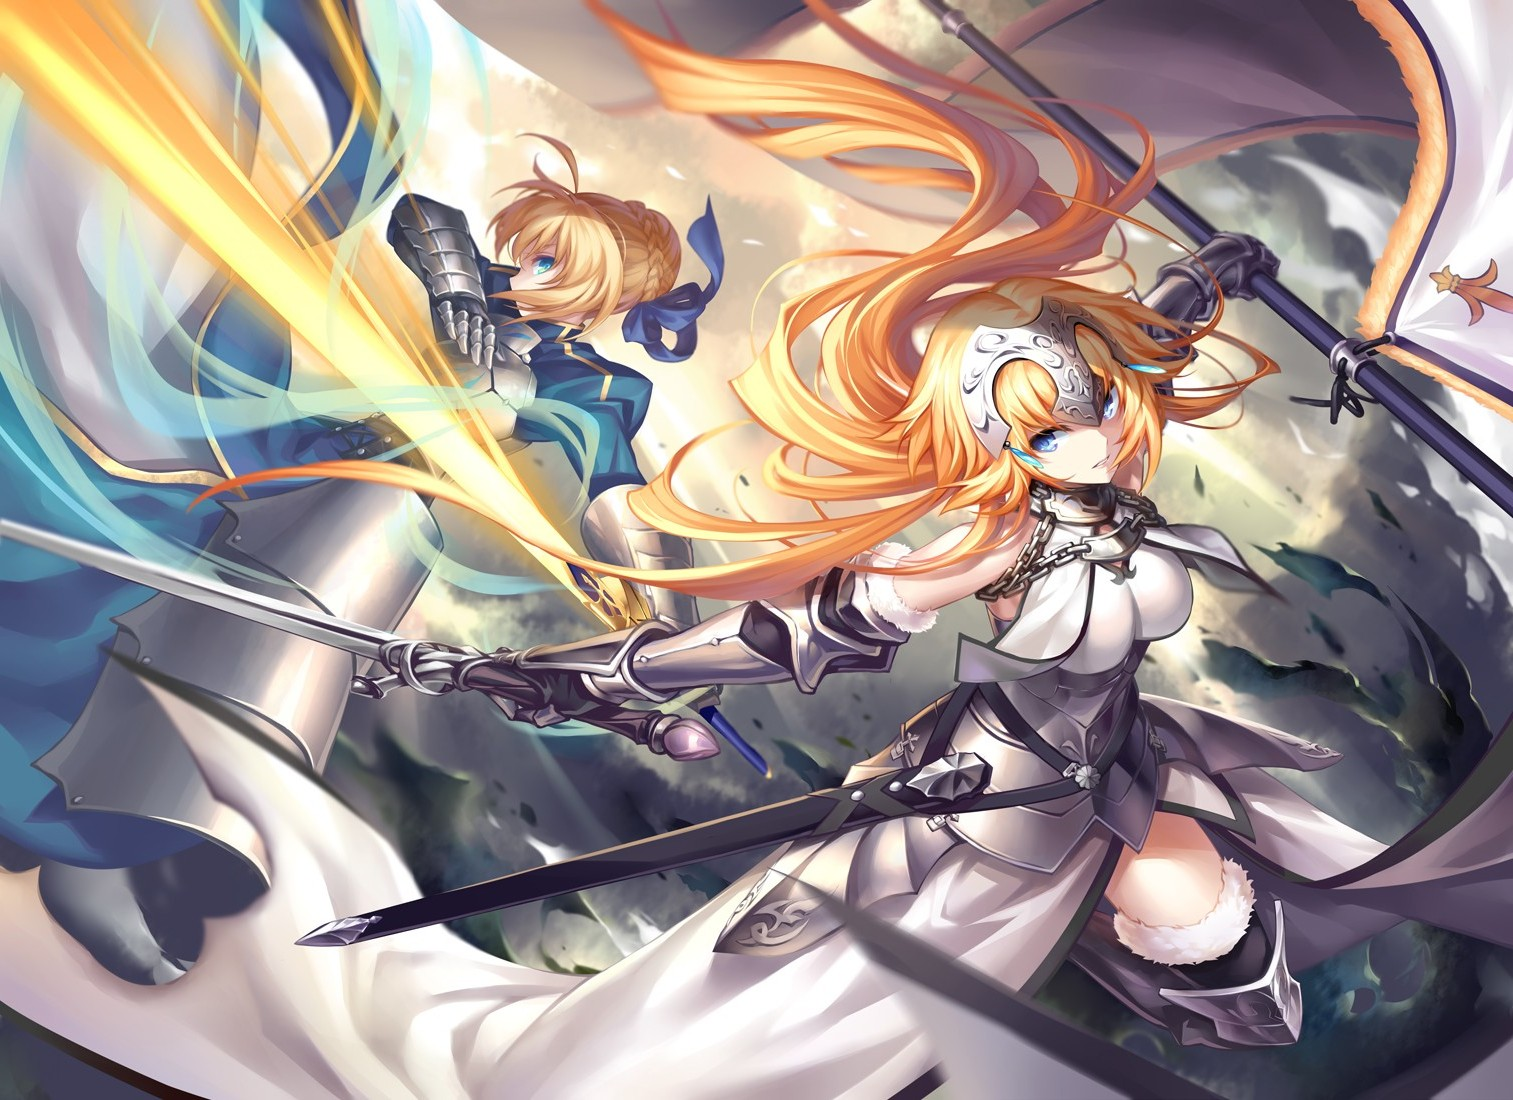 Anime Anime Girls Fate Series Saber Sword Fighting